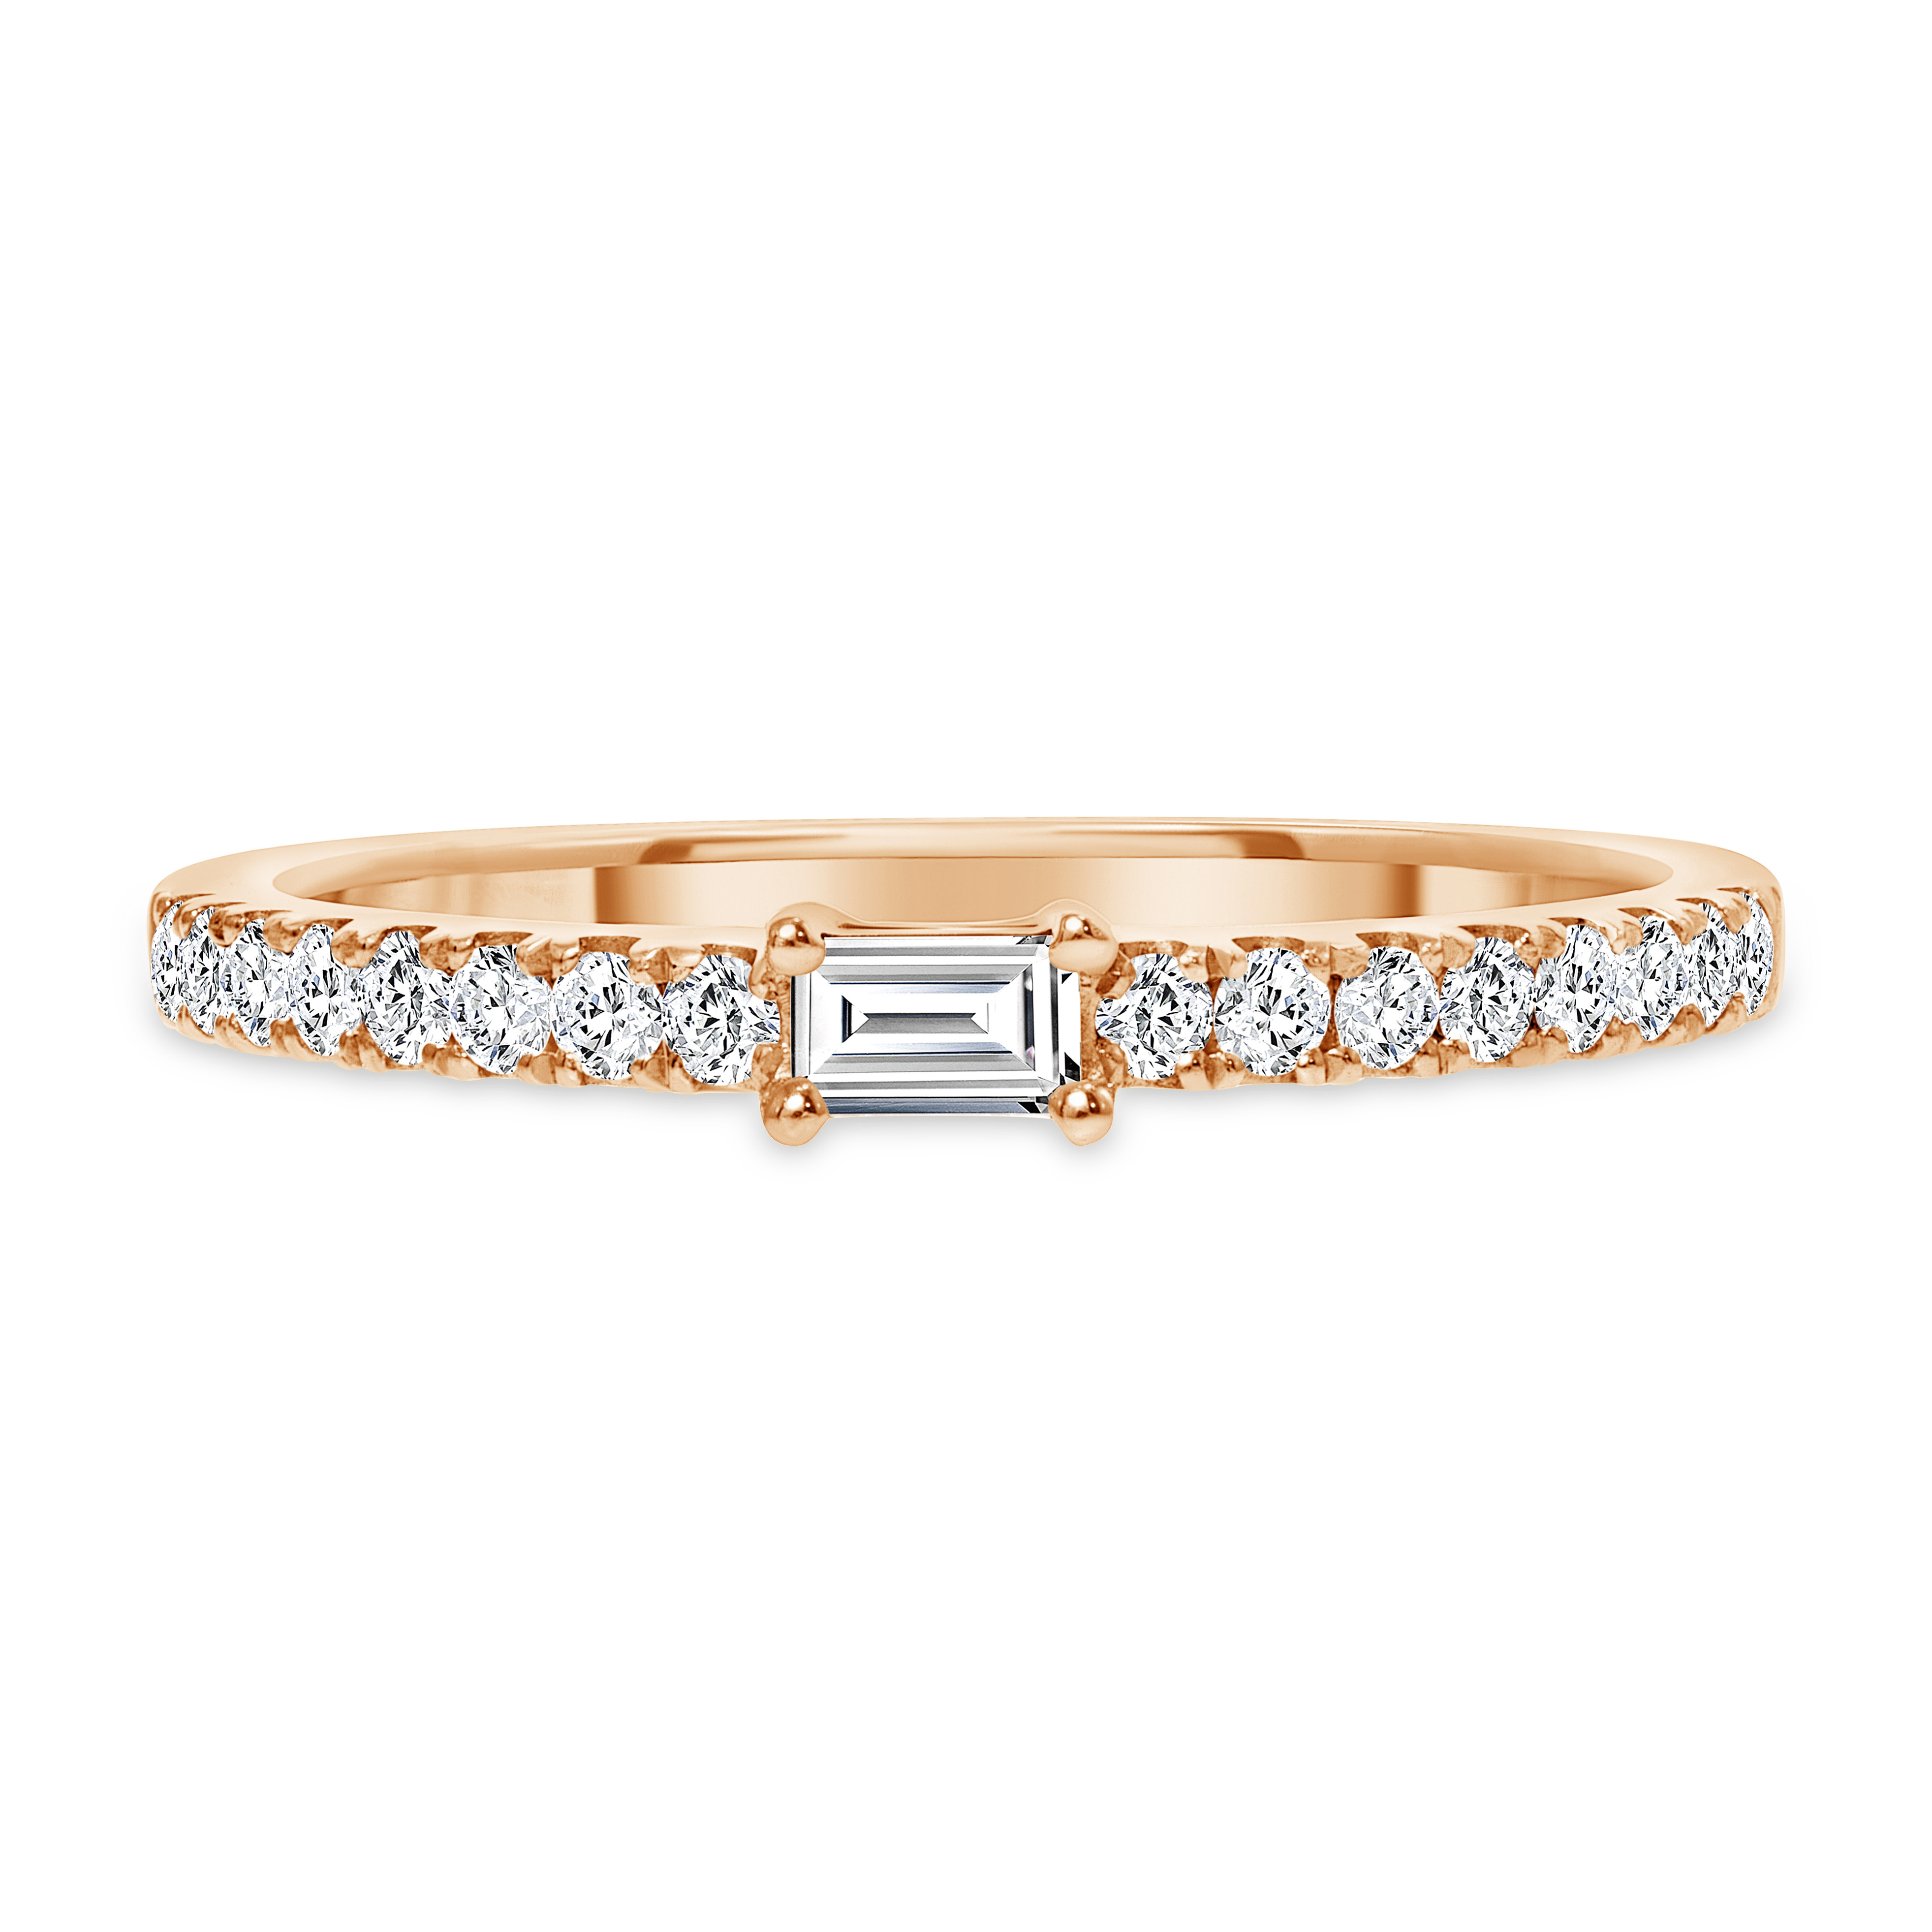 baguette diamond ring band | round and baguette diamond ring